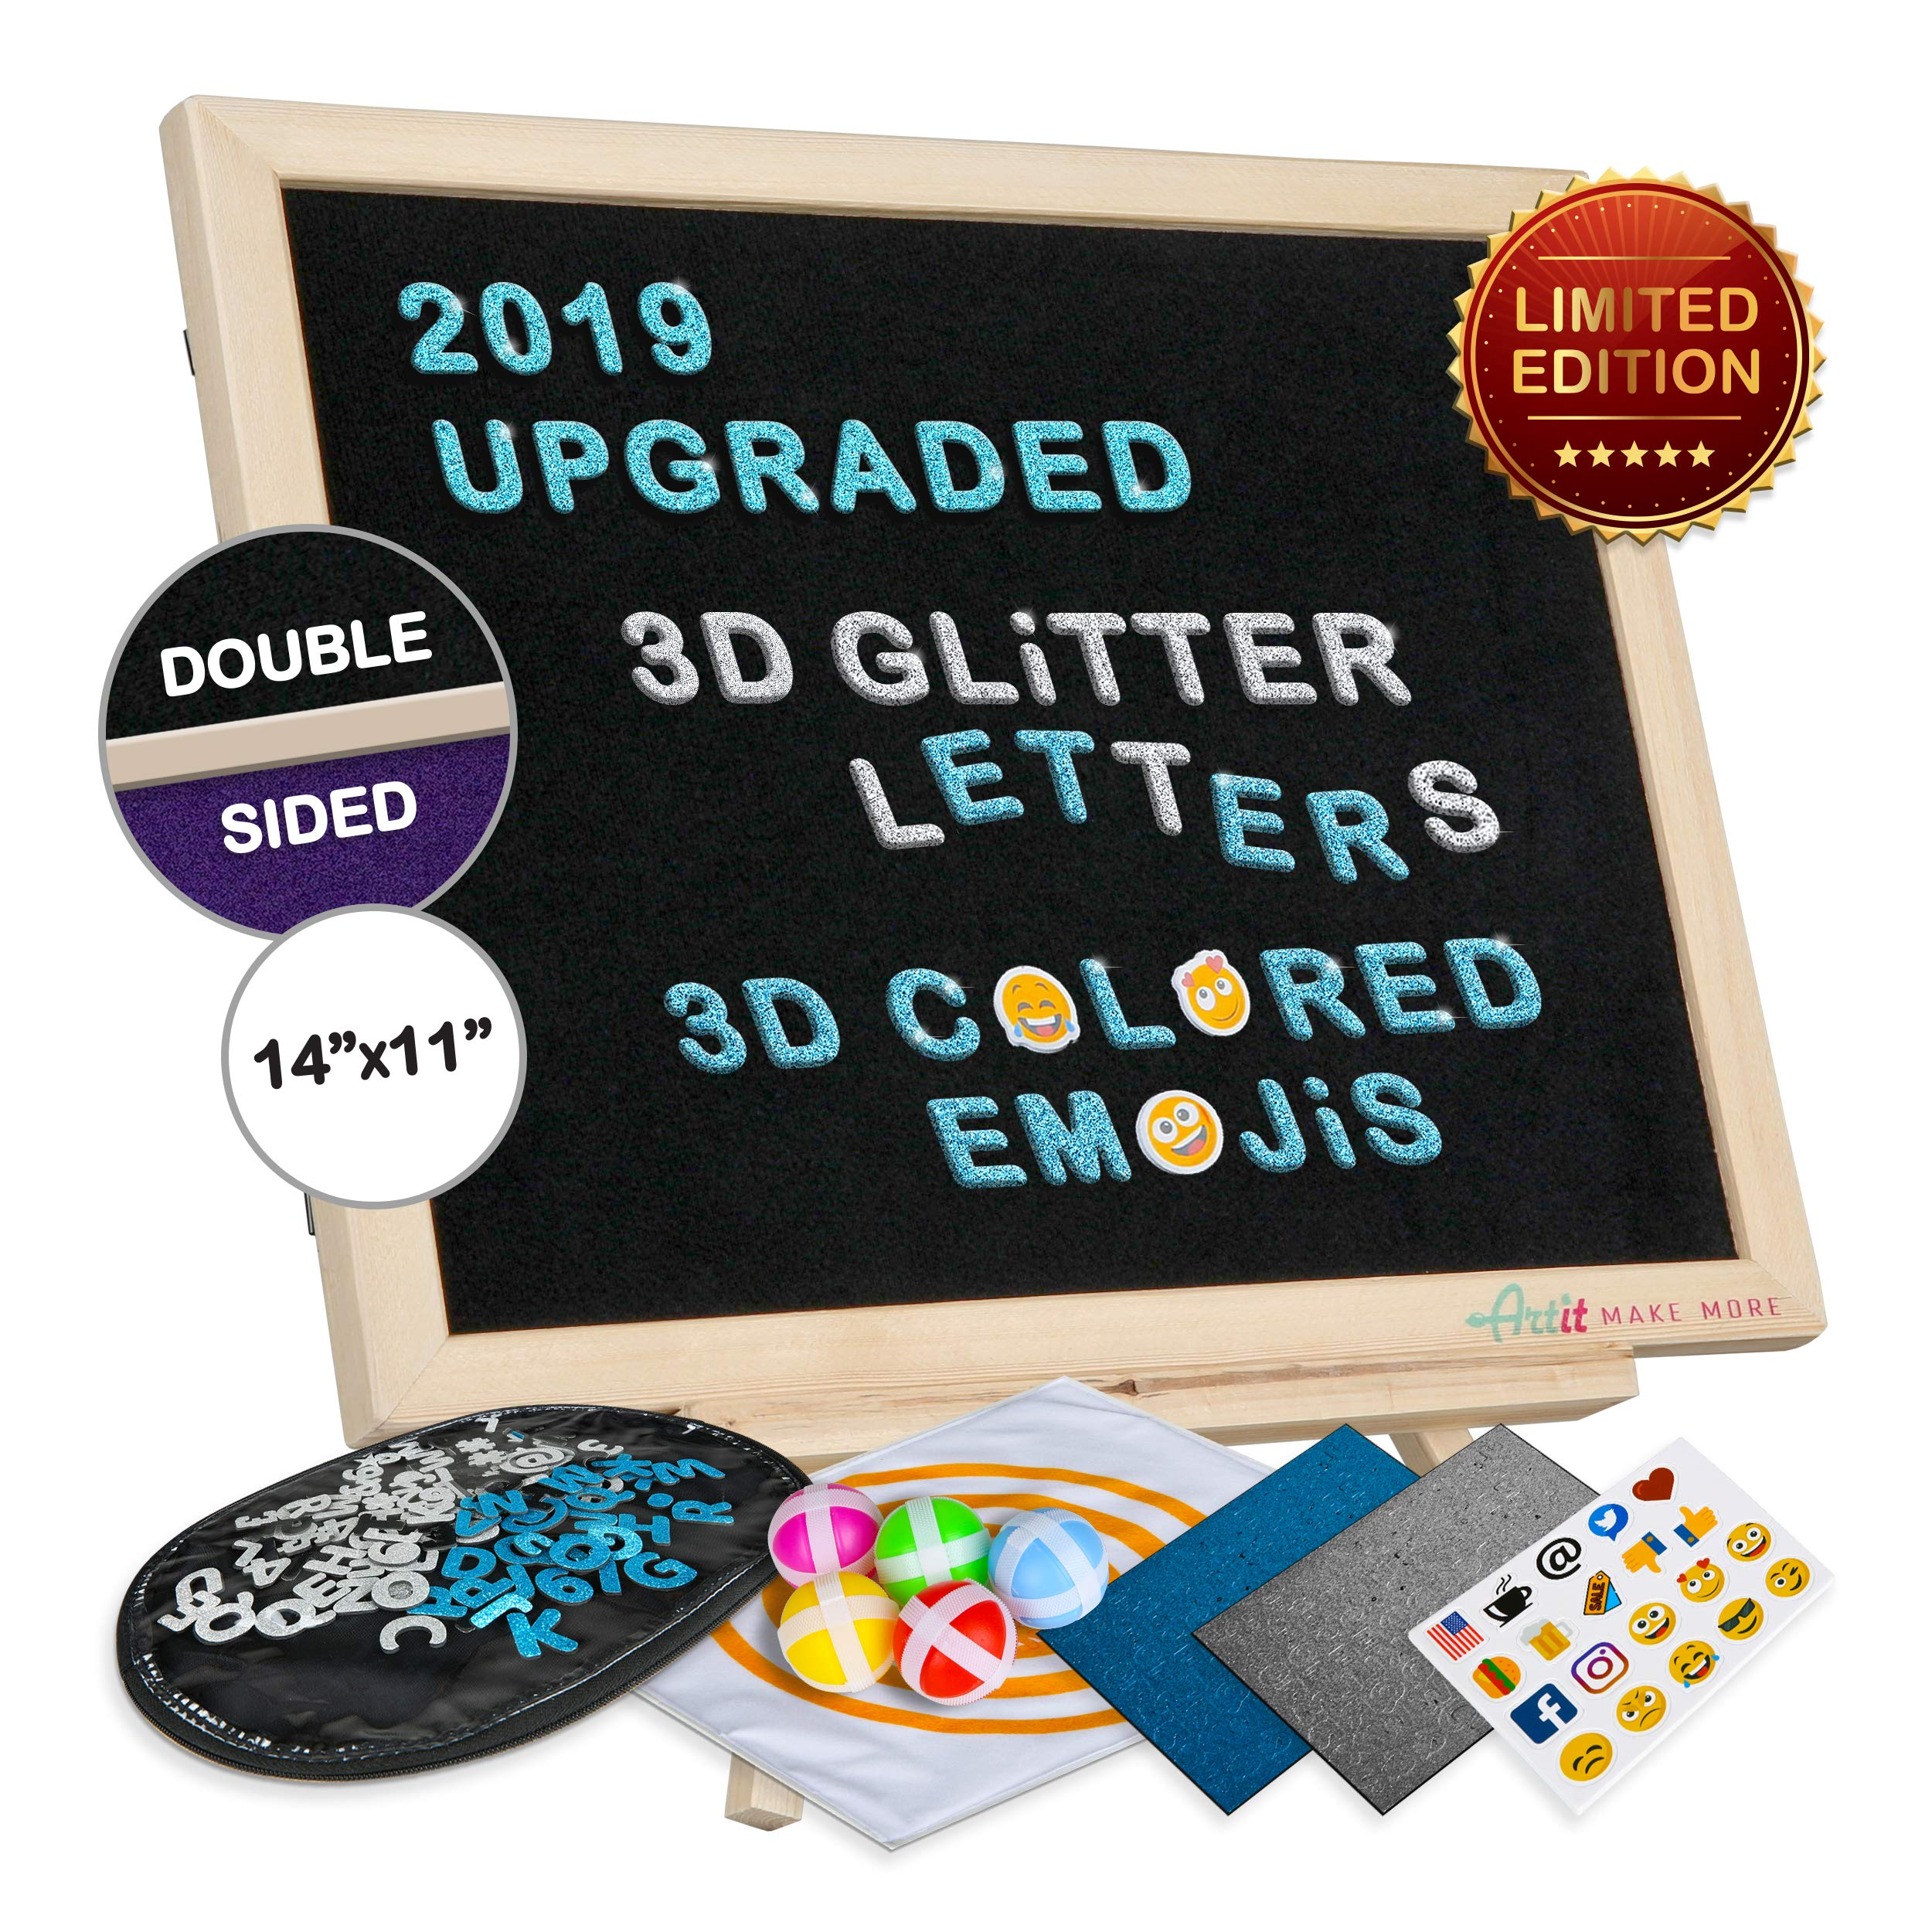 2019 Upgraded Felt Letter Board Set 11x14\' Double Sided Black Purple 3D Glitter Characters Colored Emojis Kids Dartboard Game Wooden Frame Wood Stand Changeable Message Letterboard Signs Words Quotes